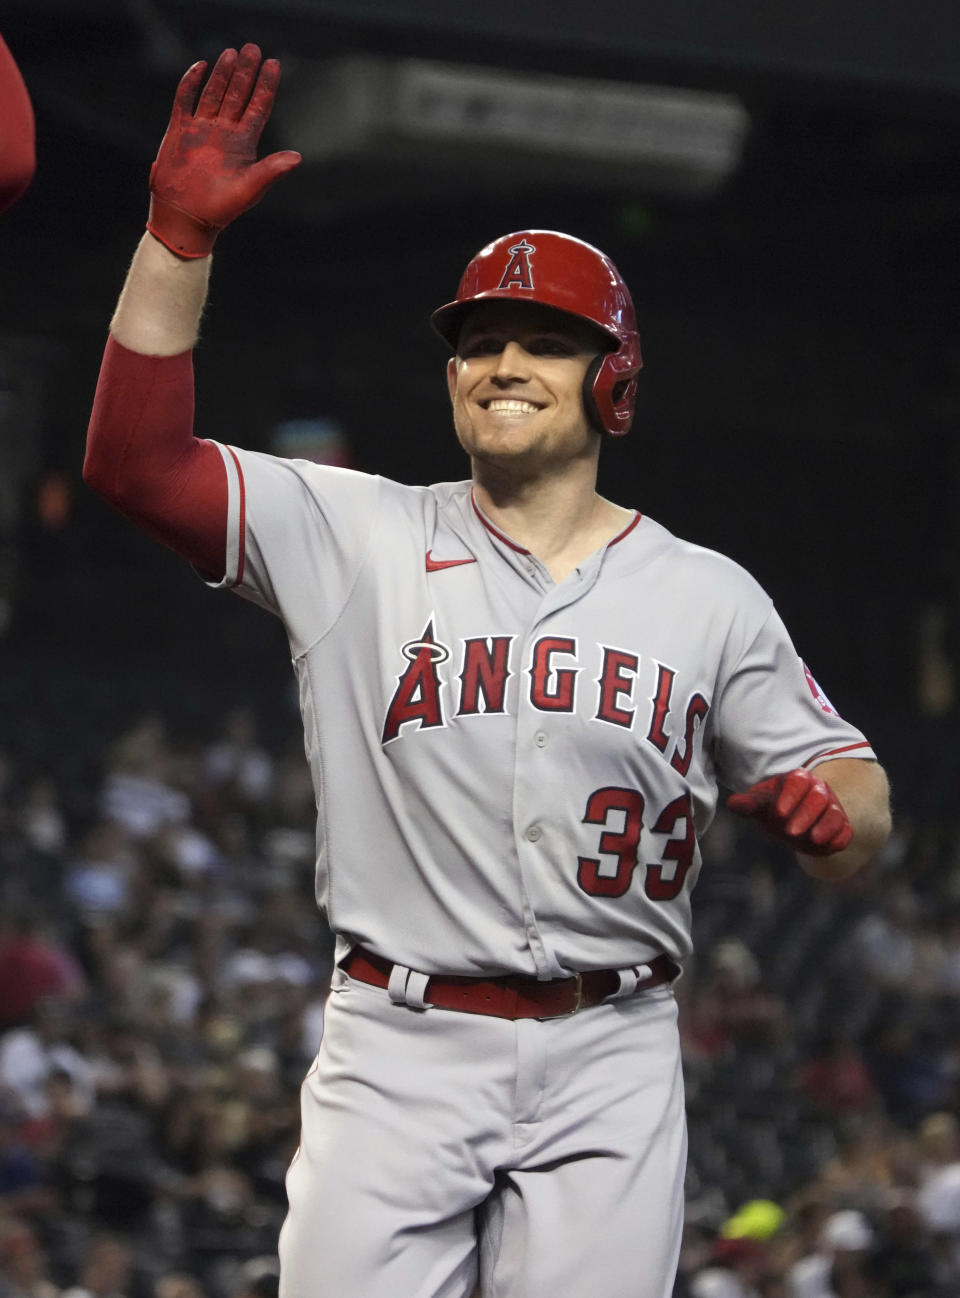 Los Angeles Angels' Max Stassi reacts after hitting a two run home run against the Arizona Diamondbacks in the first inning during a baseball game, Sunday, June 13, 2021, in Phoenix. (AP Photo/Rick Scuteri)